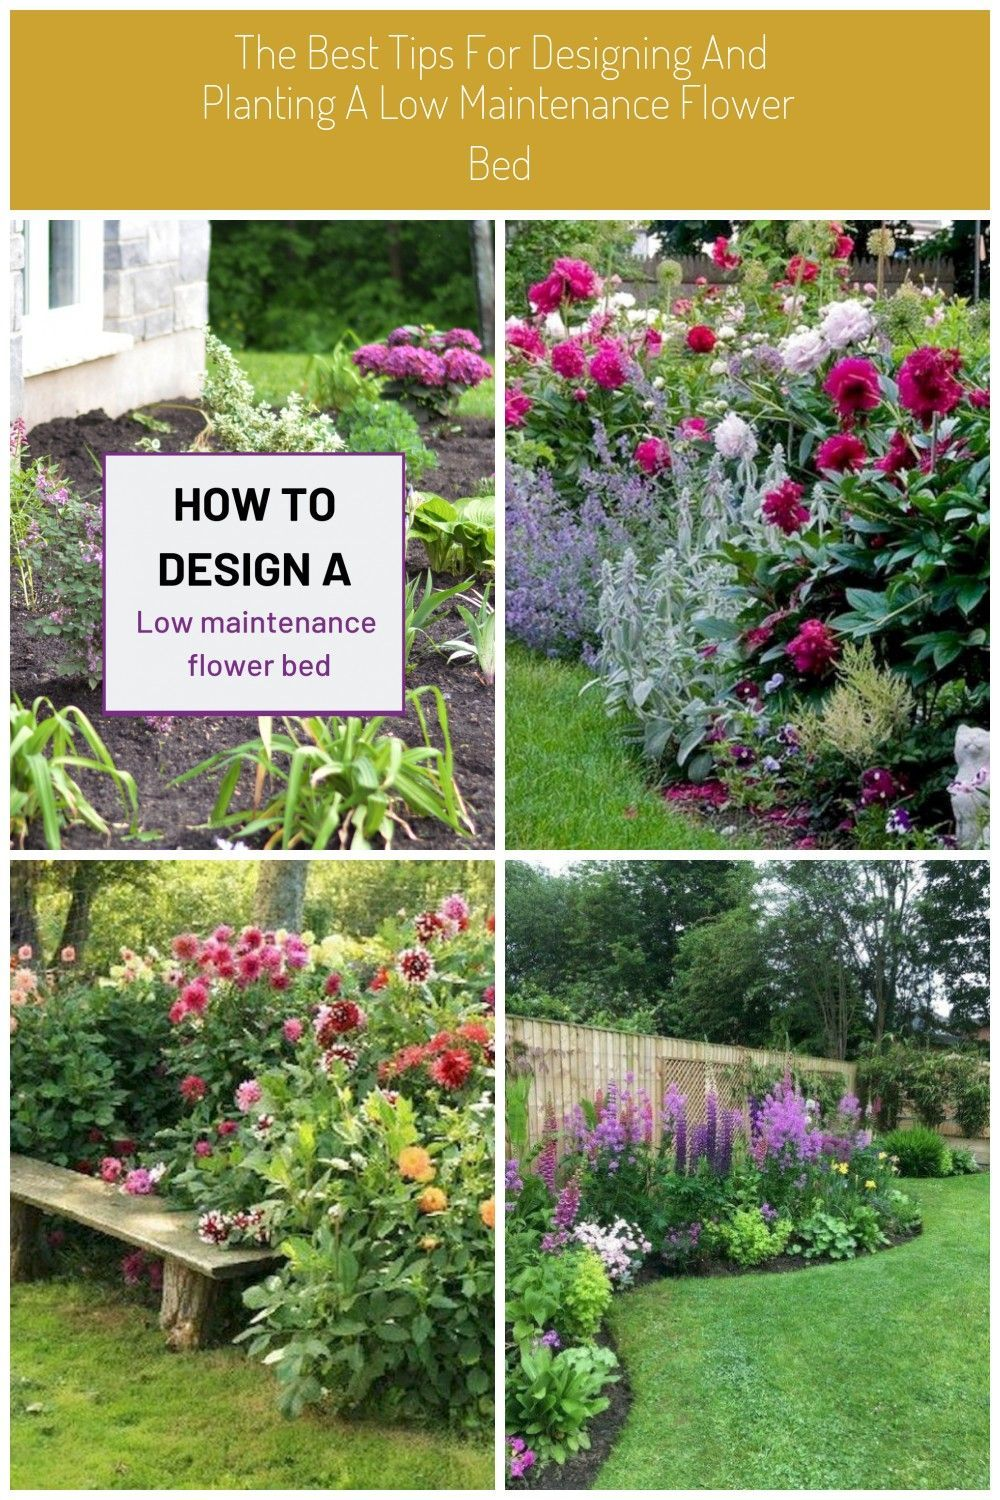 Are You Looking For Some Simple Garden Design Ideas To Create A